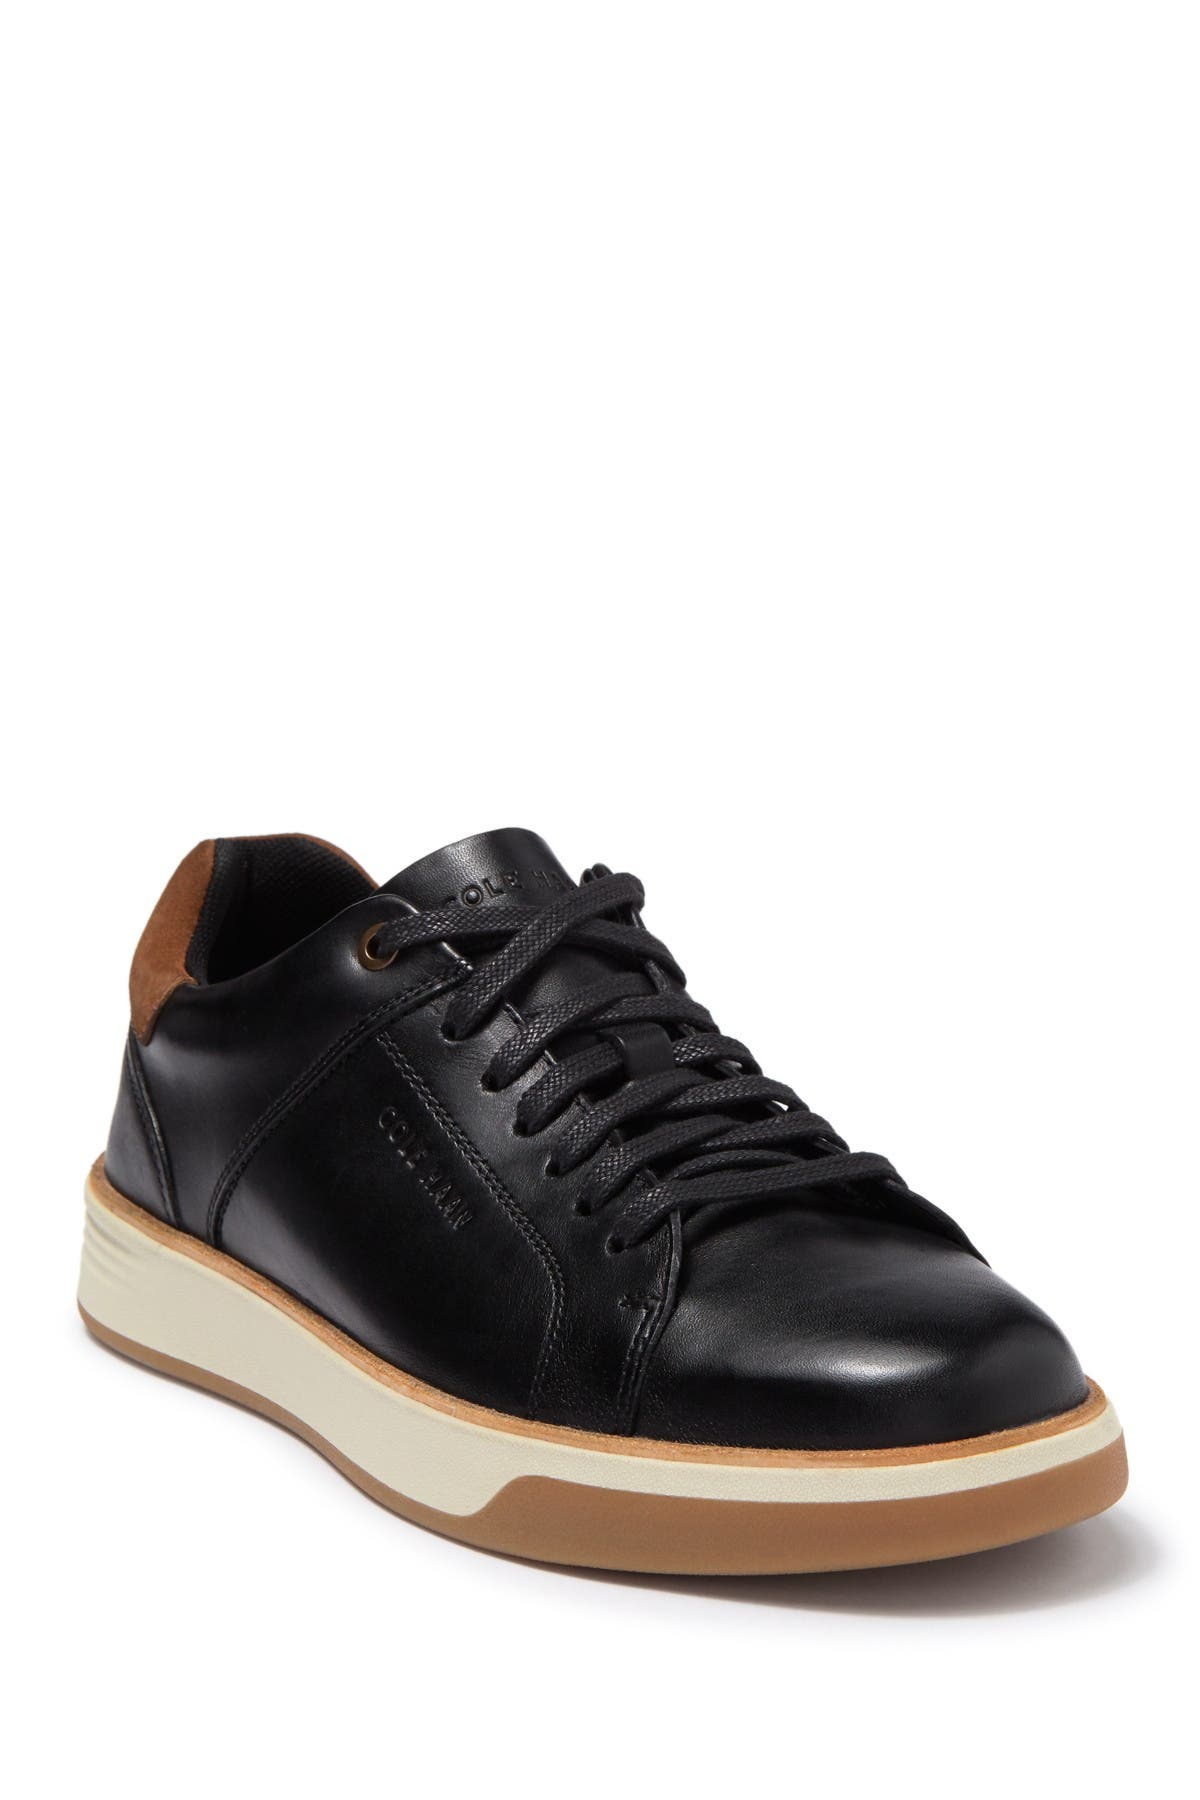 Image of Cole Haan Grand Crosscourt Craft Leather Sneaker